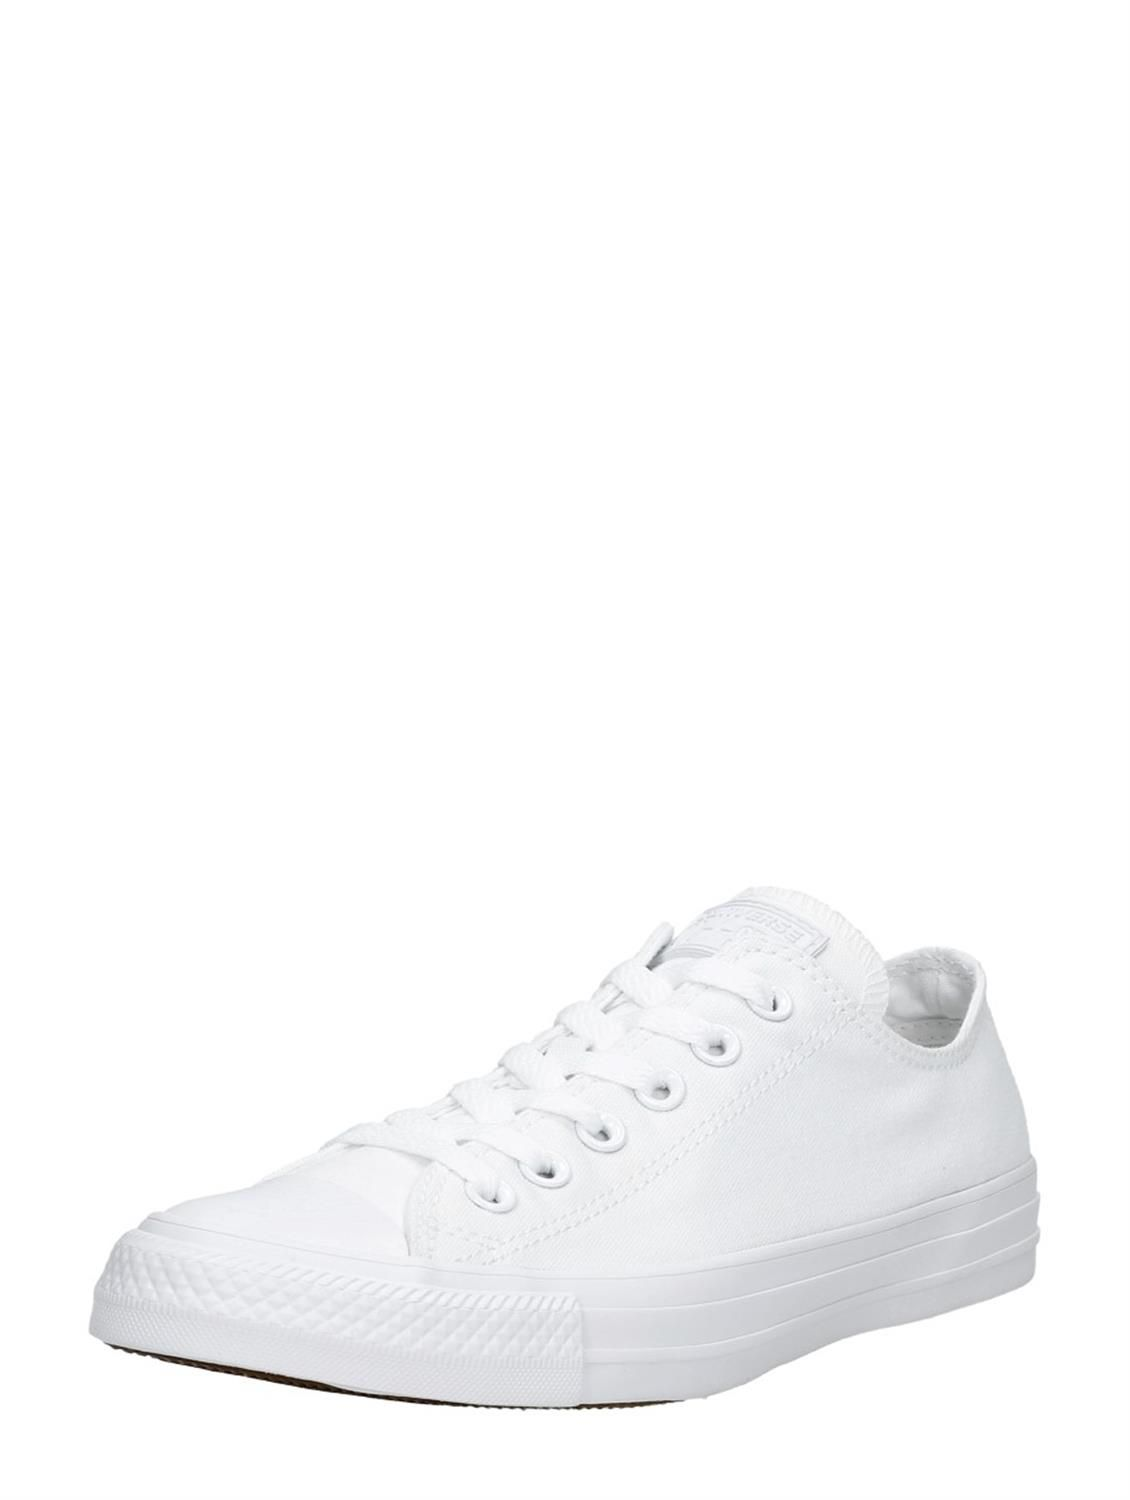 Converse Chuck Taylor All Star all white lage dames sneakers